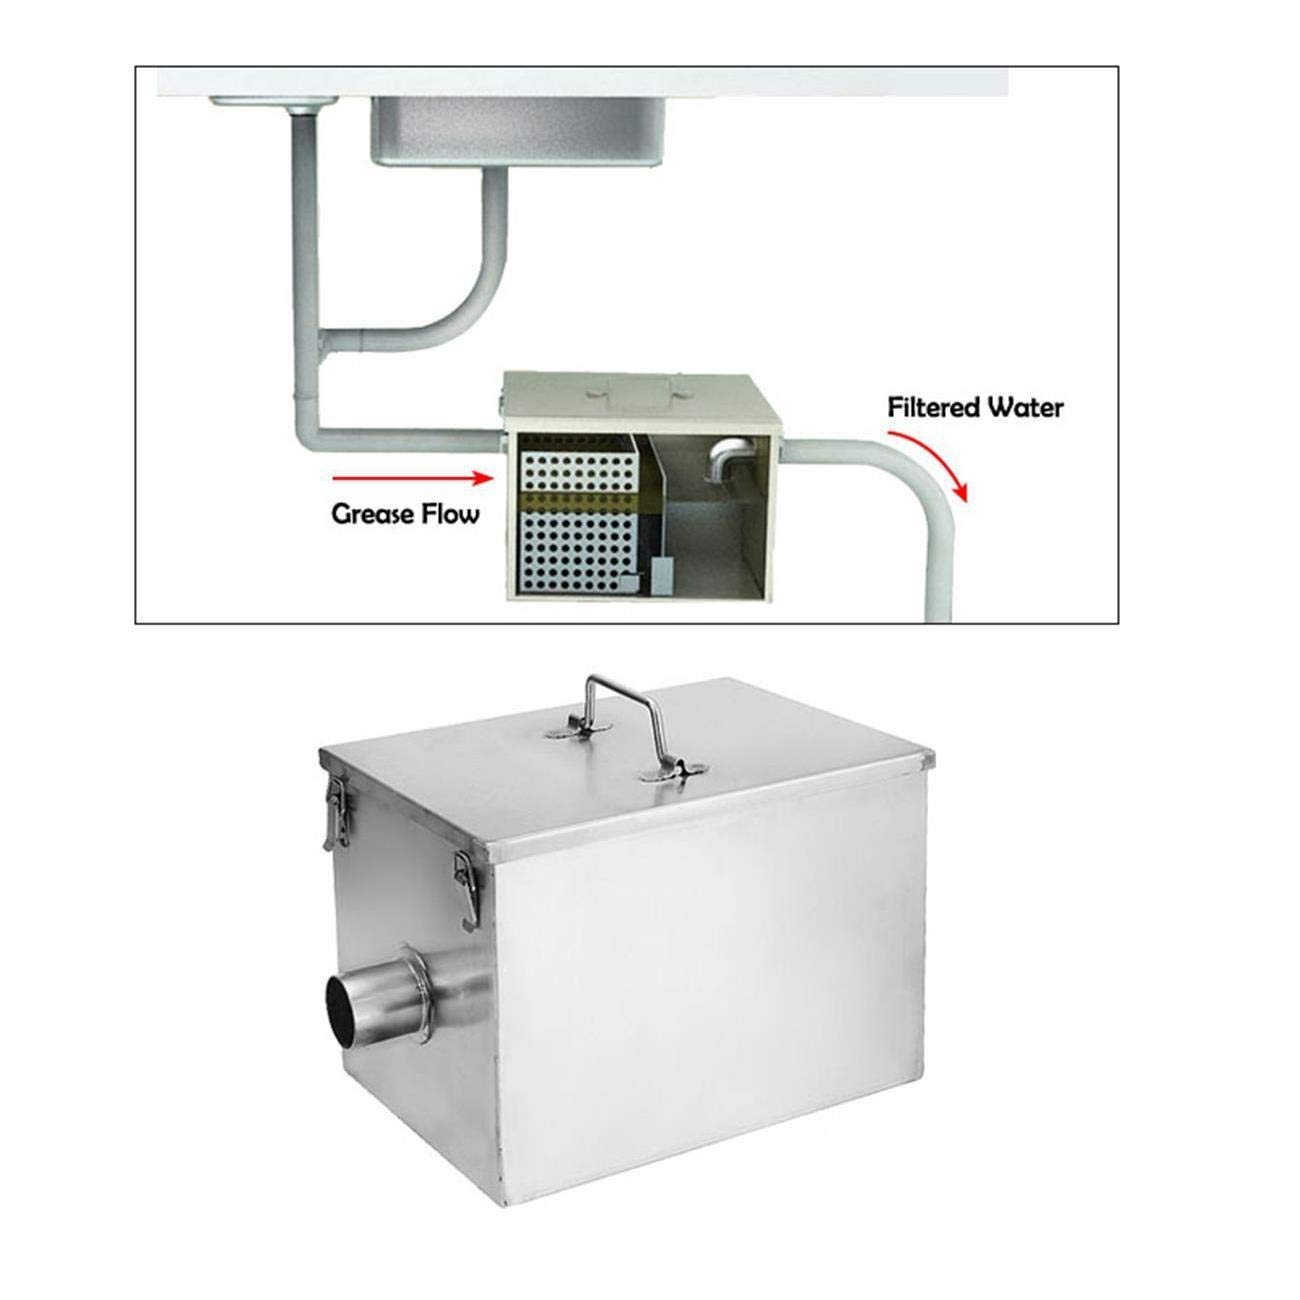 BEAMNOVA 8lbs Commercial Grease Trap 5GPM Gallons Per Minute Stainless Steel Interceptor for Restaurant Kitchen, 1 Year Warranty